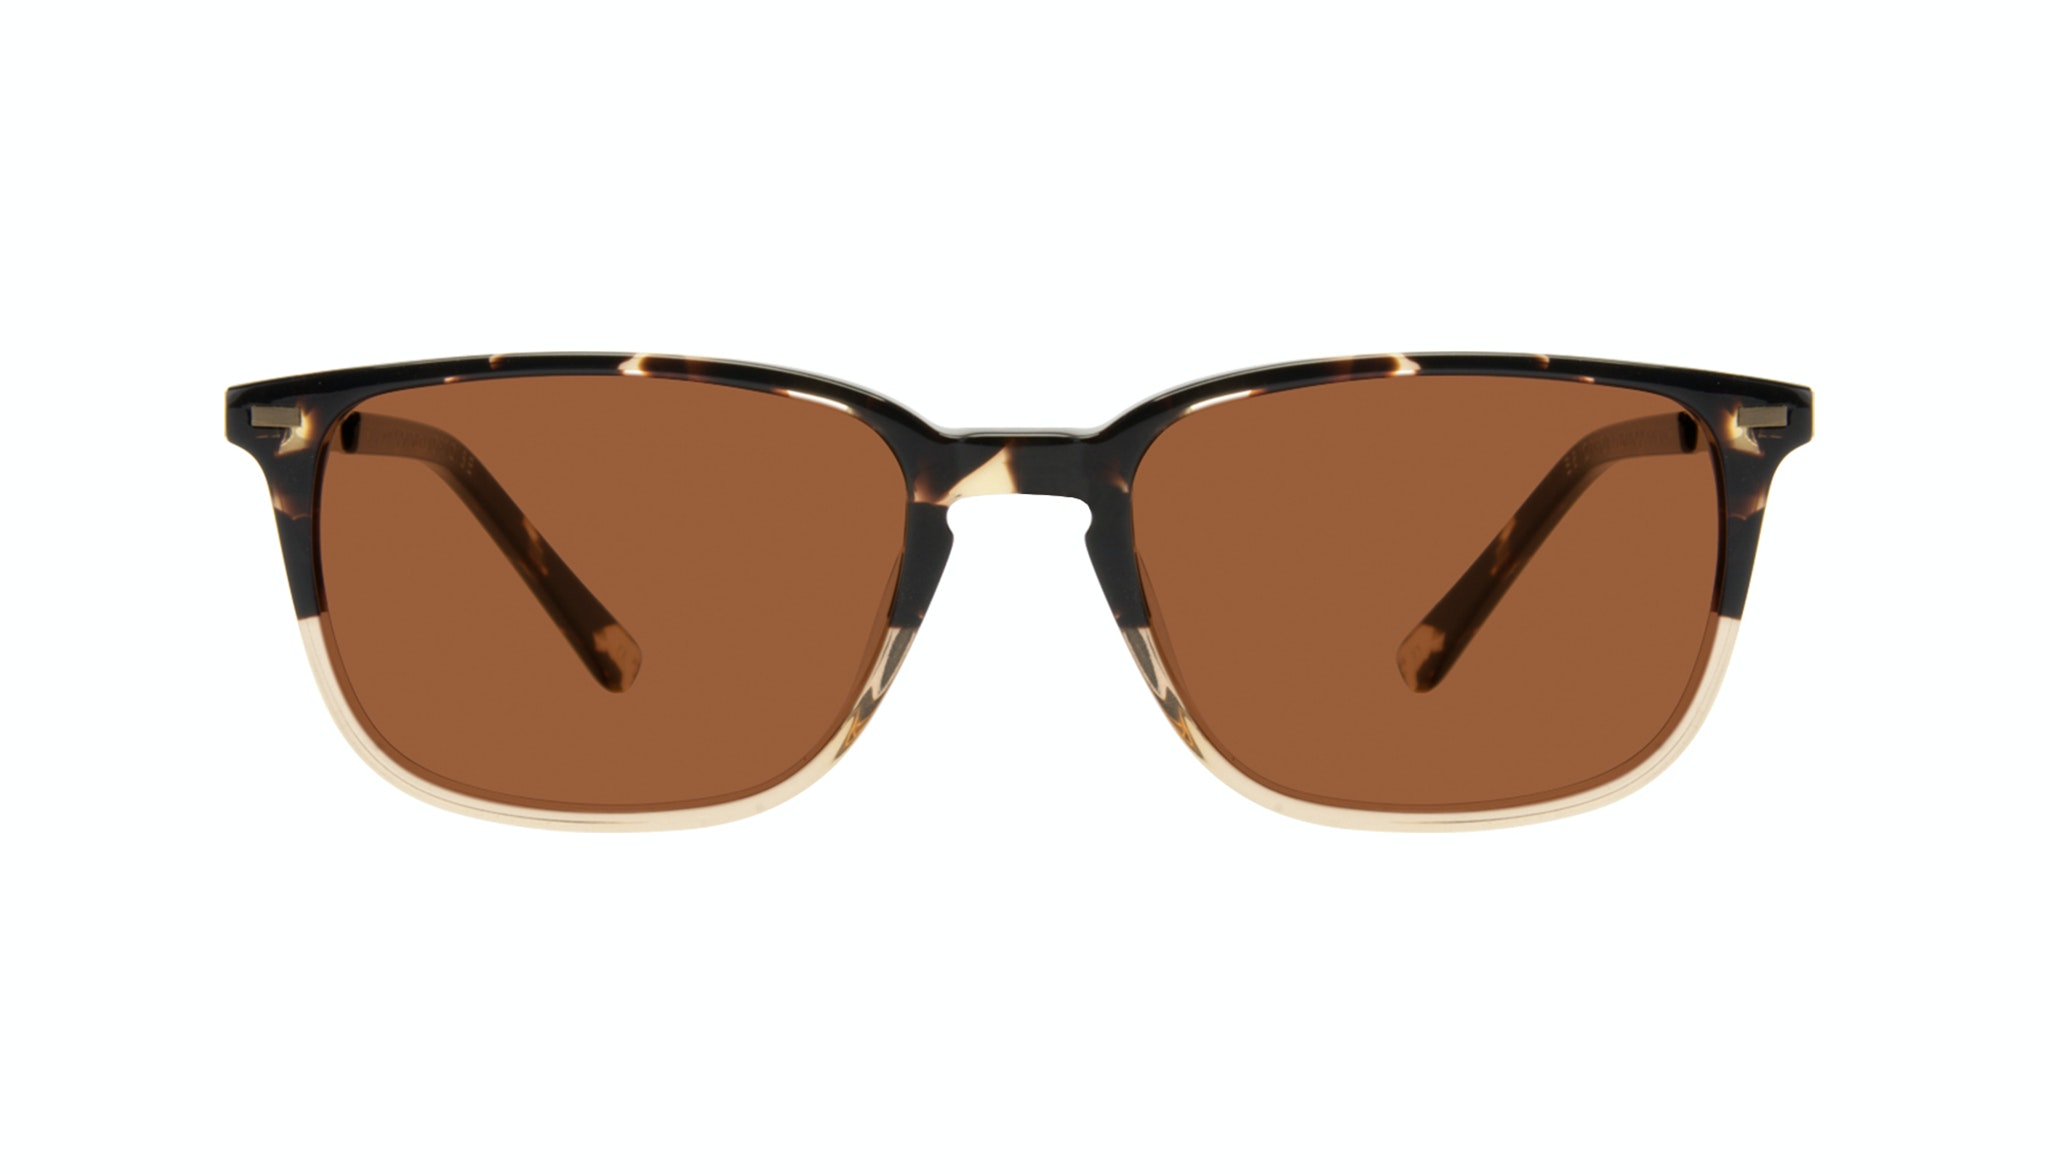 Affordable Fashion Glasses Rectangle Sunglasses Men Sharp Golden Tortoise